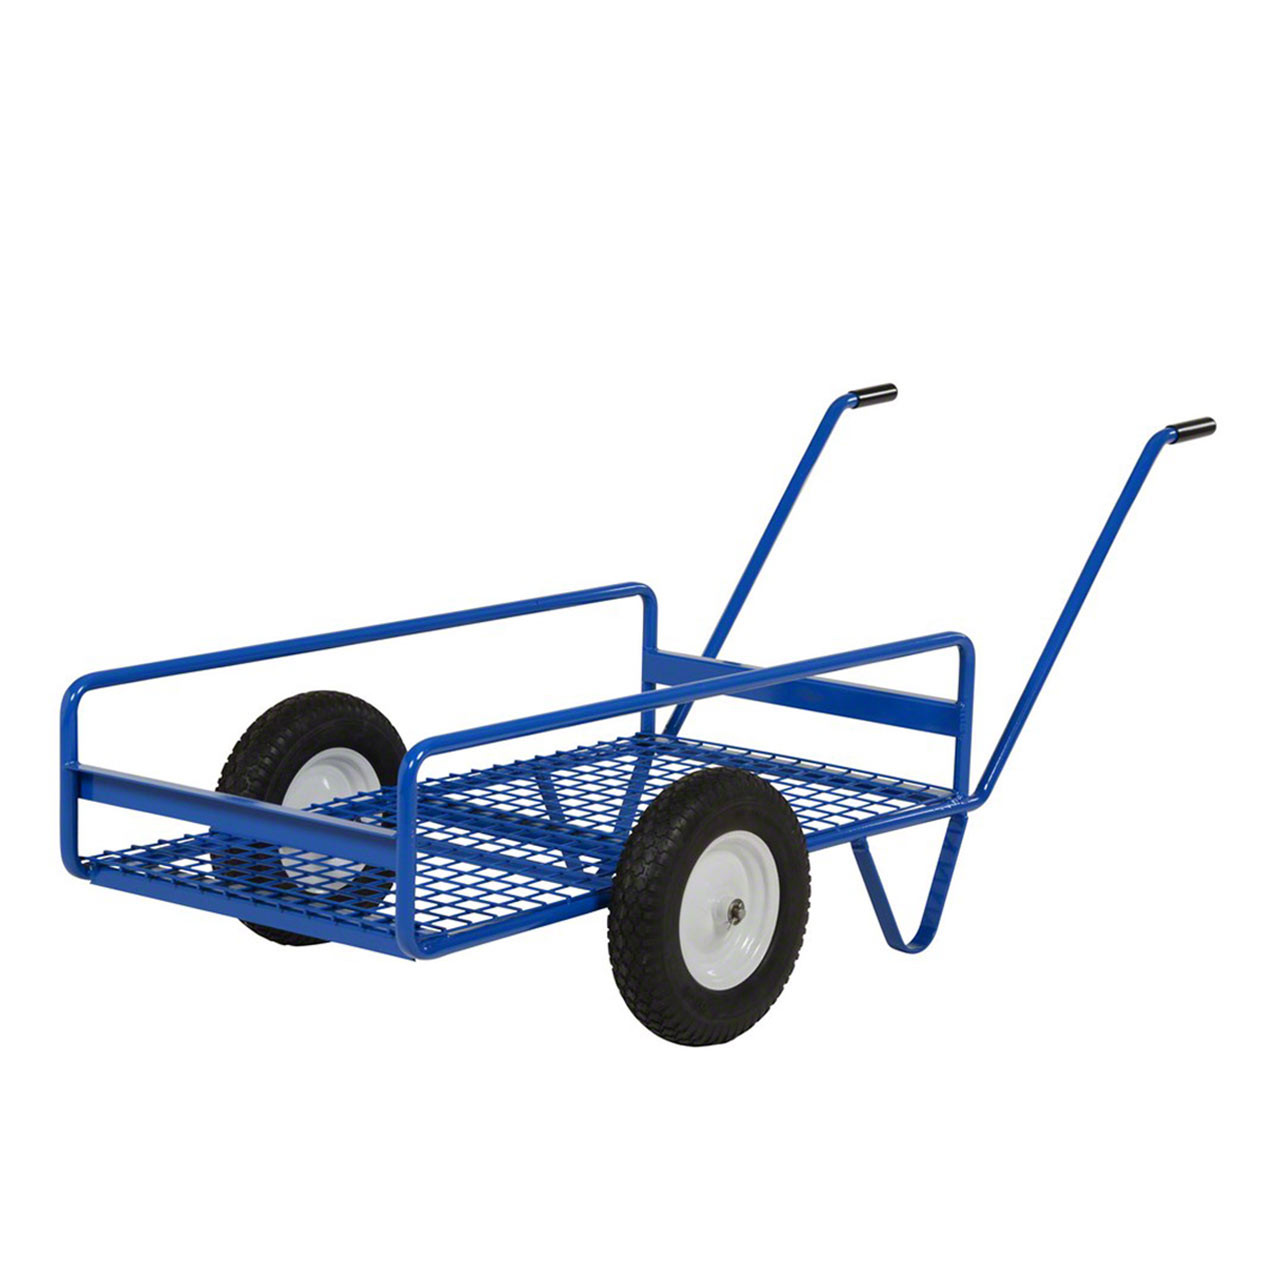 These work carts are great for maneuvering over rough terrain